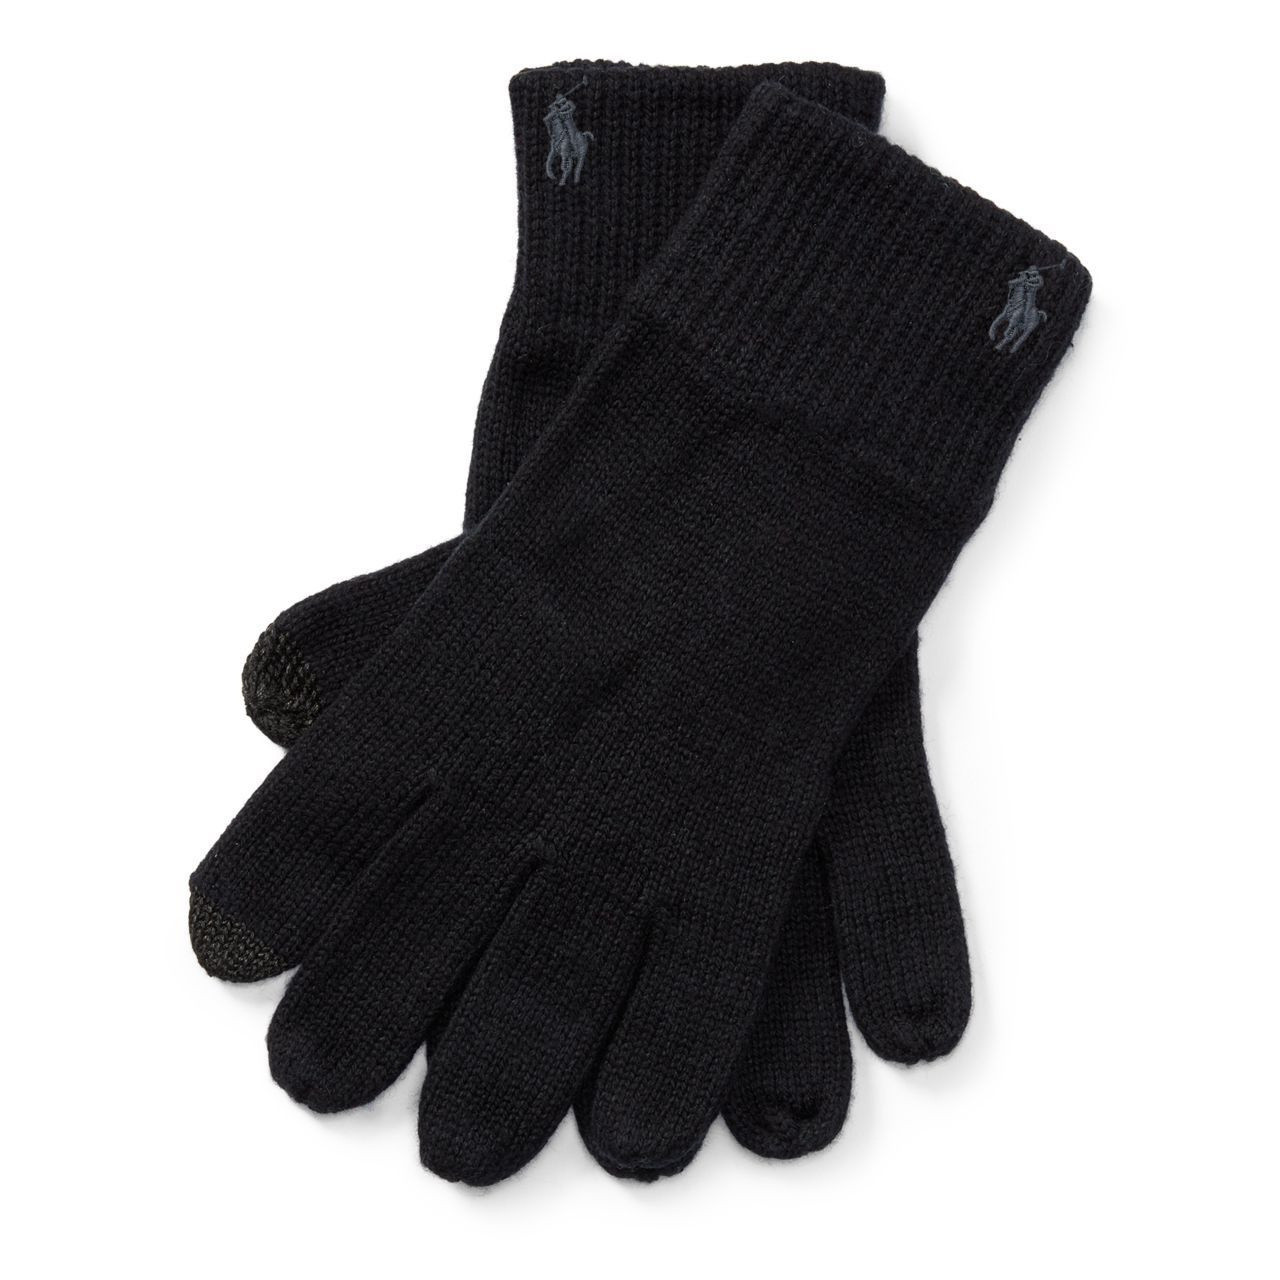 ◎送料込み◎Cotton-Blend Tech Gloves